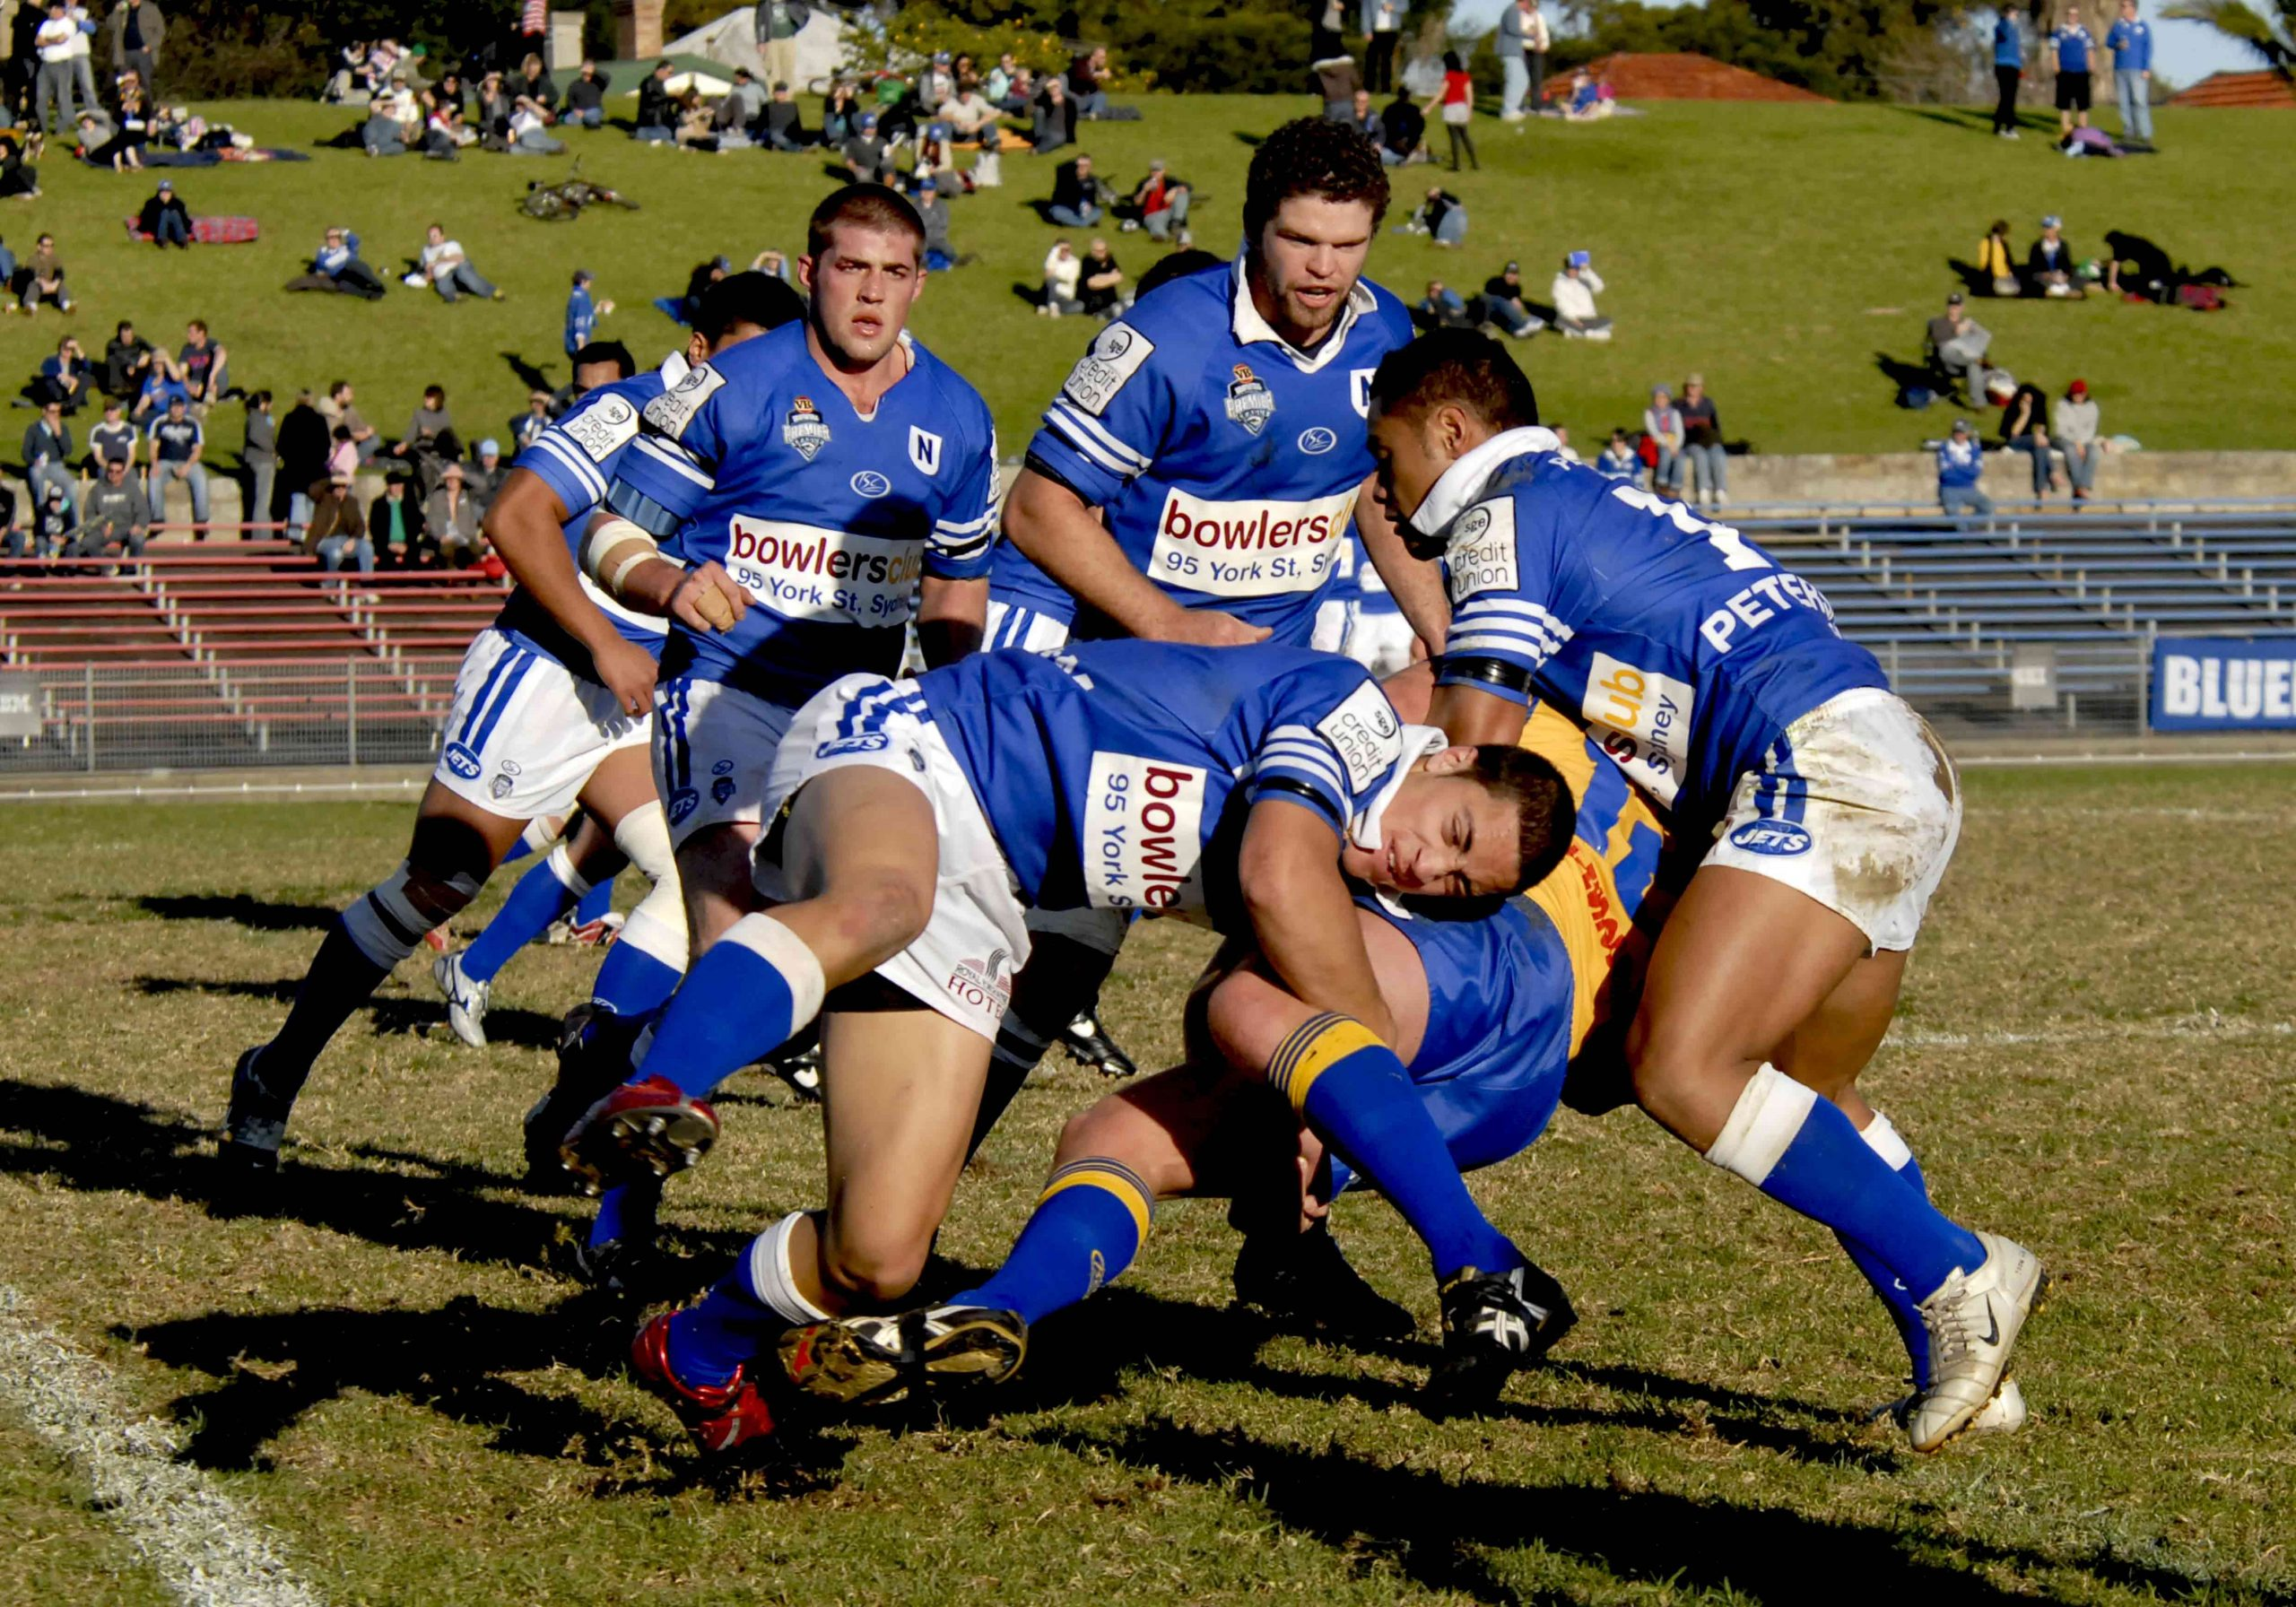 In front, left to right, Newtown Jets players Troy Savage and Hermani Moala wrap up a Parramatta player in this match at Henson Park on the 23rd June 2007.  Dale Newton (left) and Adam Schubert are the Newtown Jets players in the rear.     Photo: Gary Sutherland Photography.